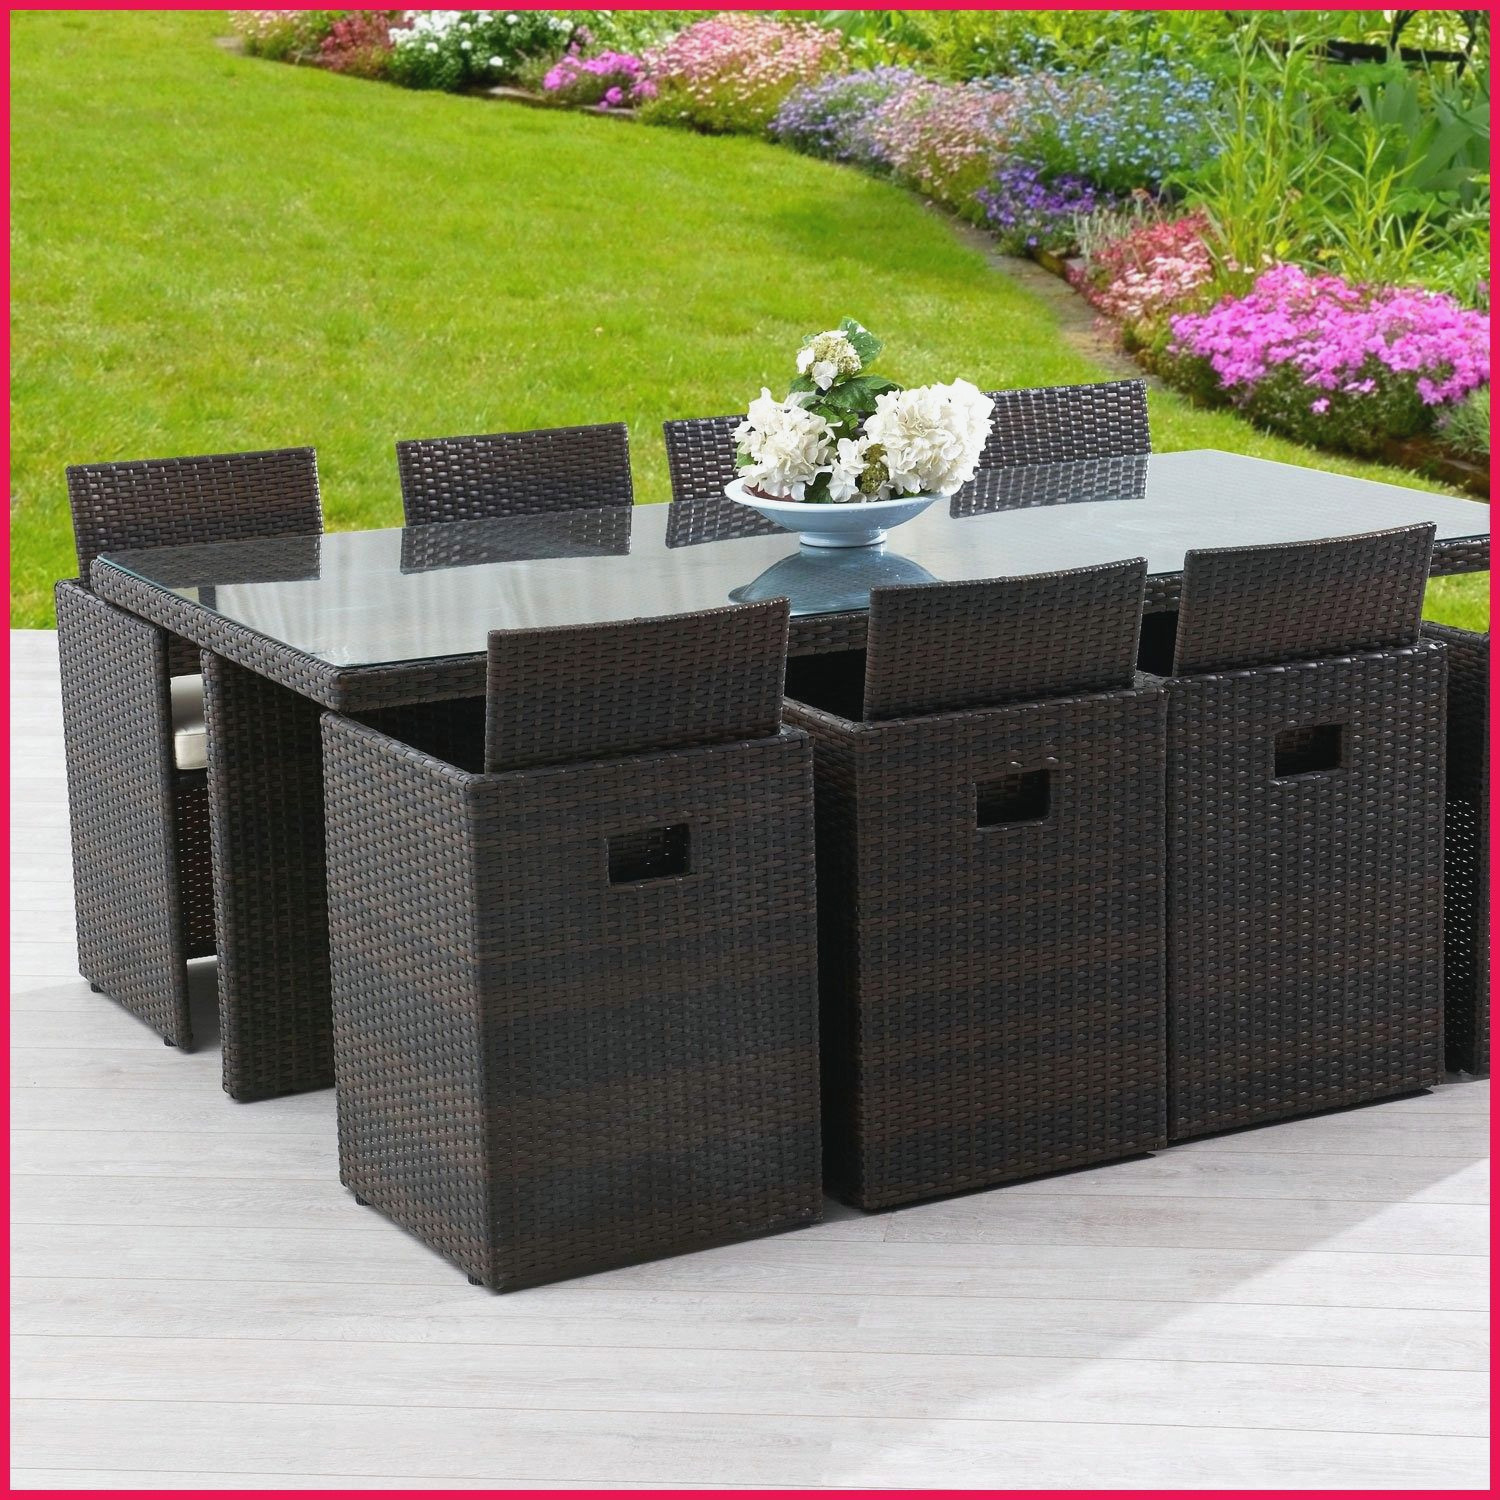 Mobilier De Jardin Super U Beau Photos Emejing Table De Jardin ...